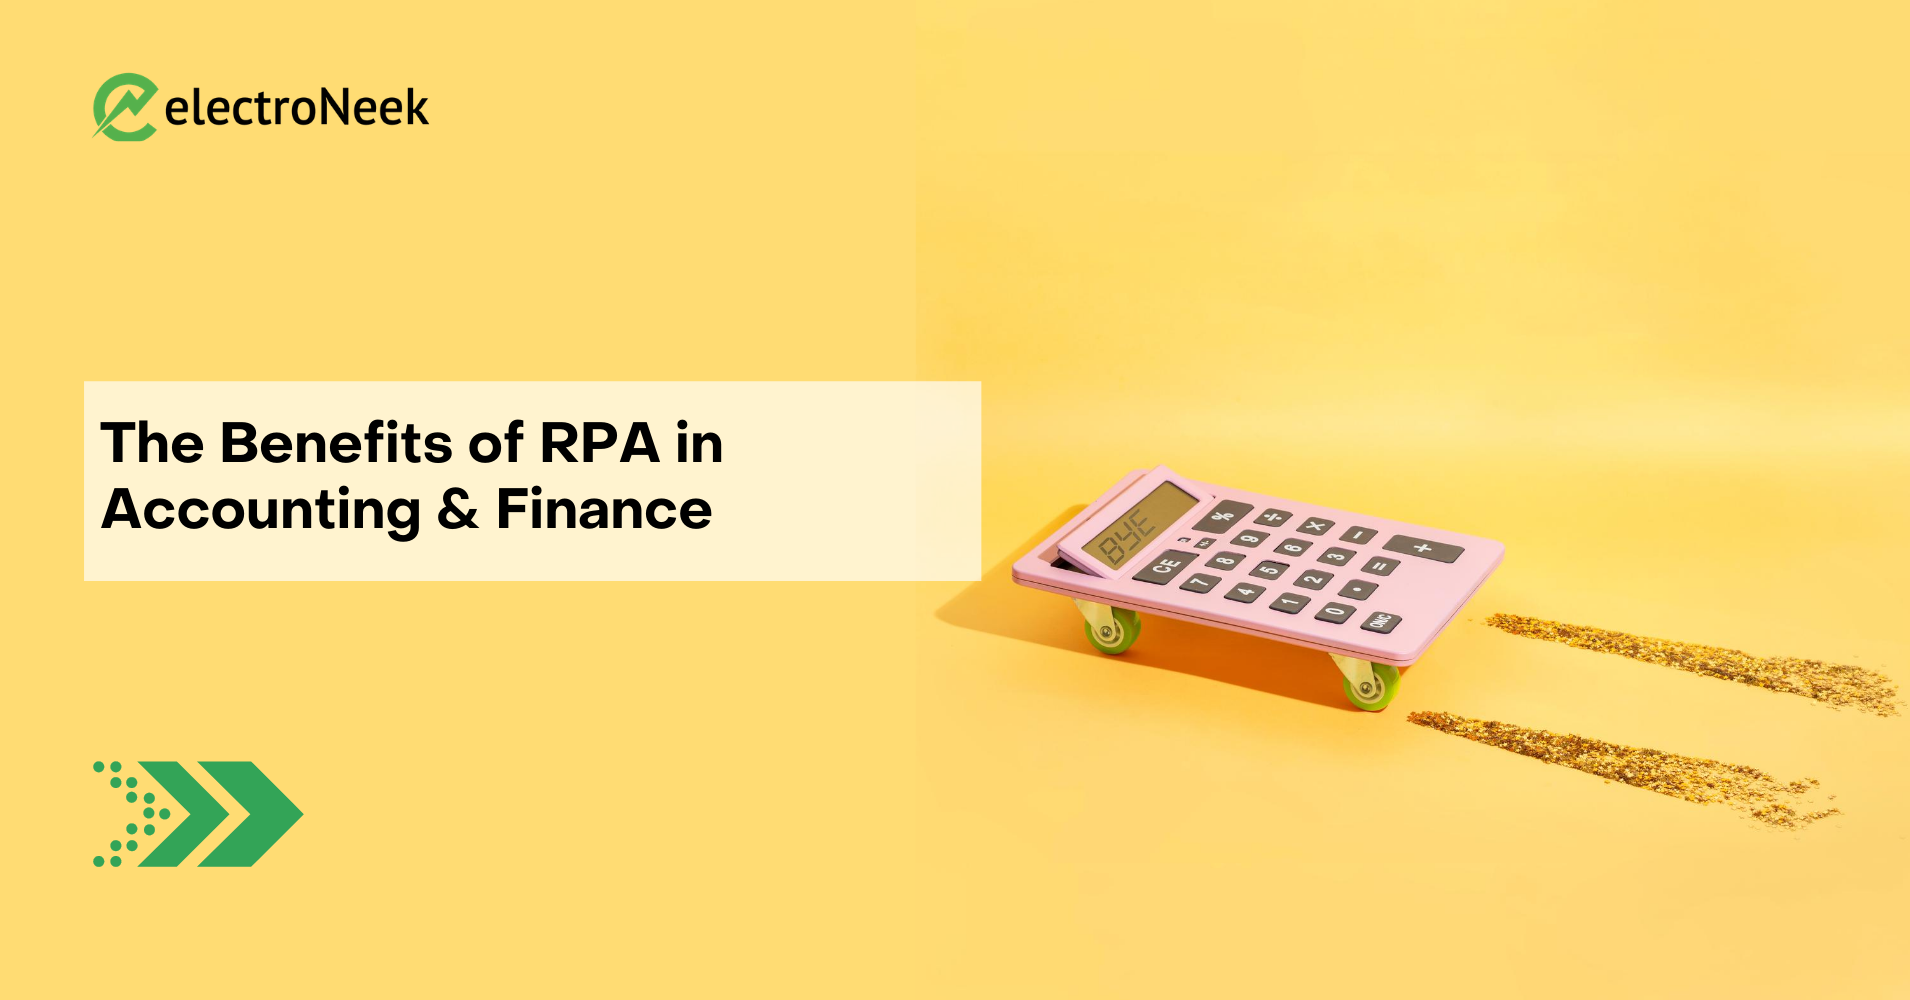 The Benefits of RPA in Accounting and Finance